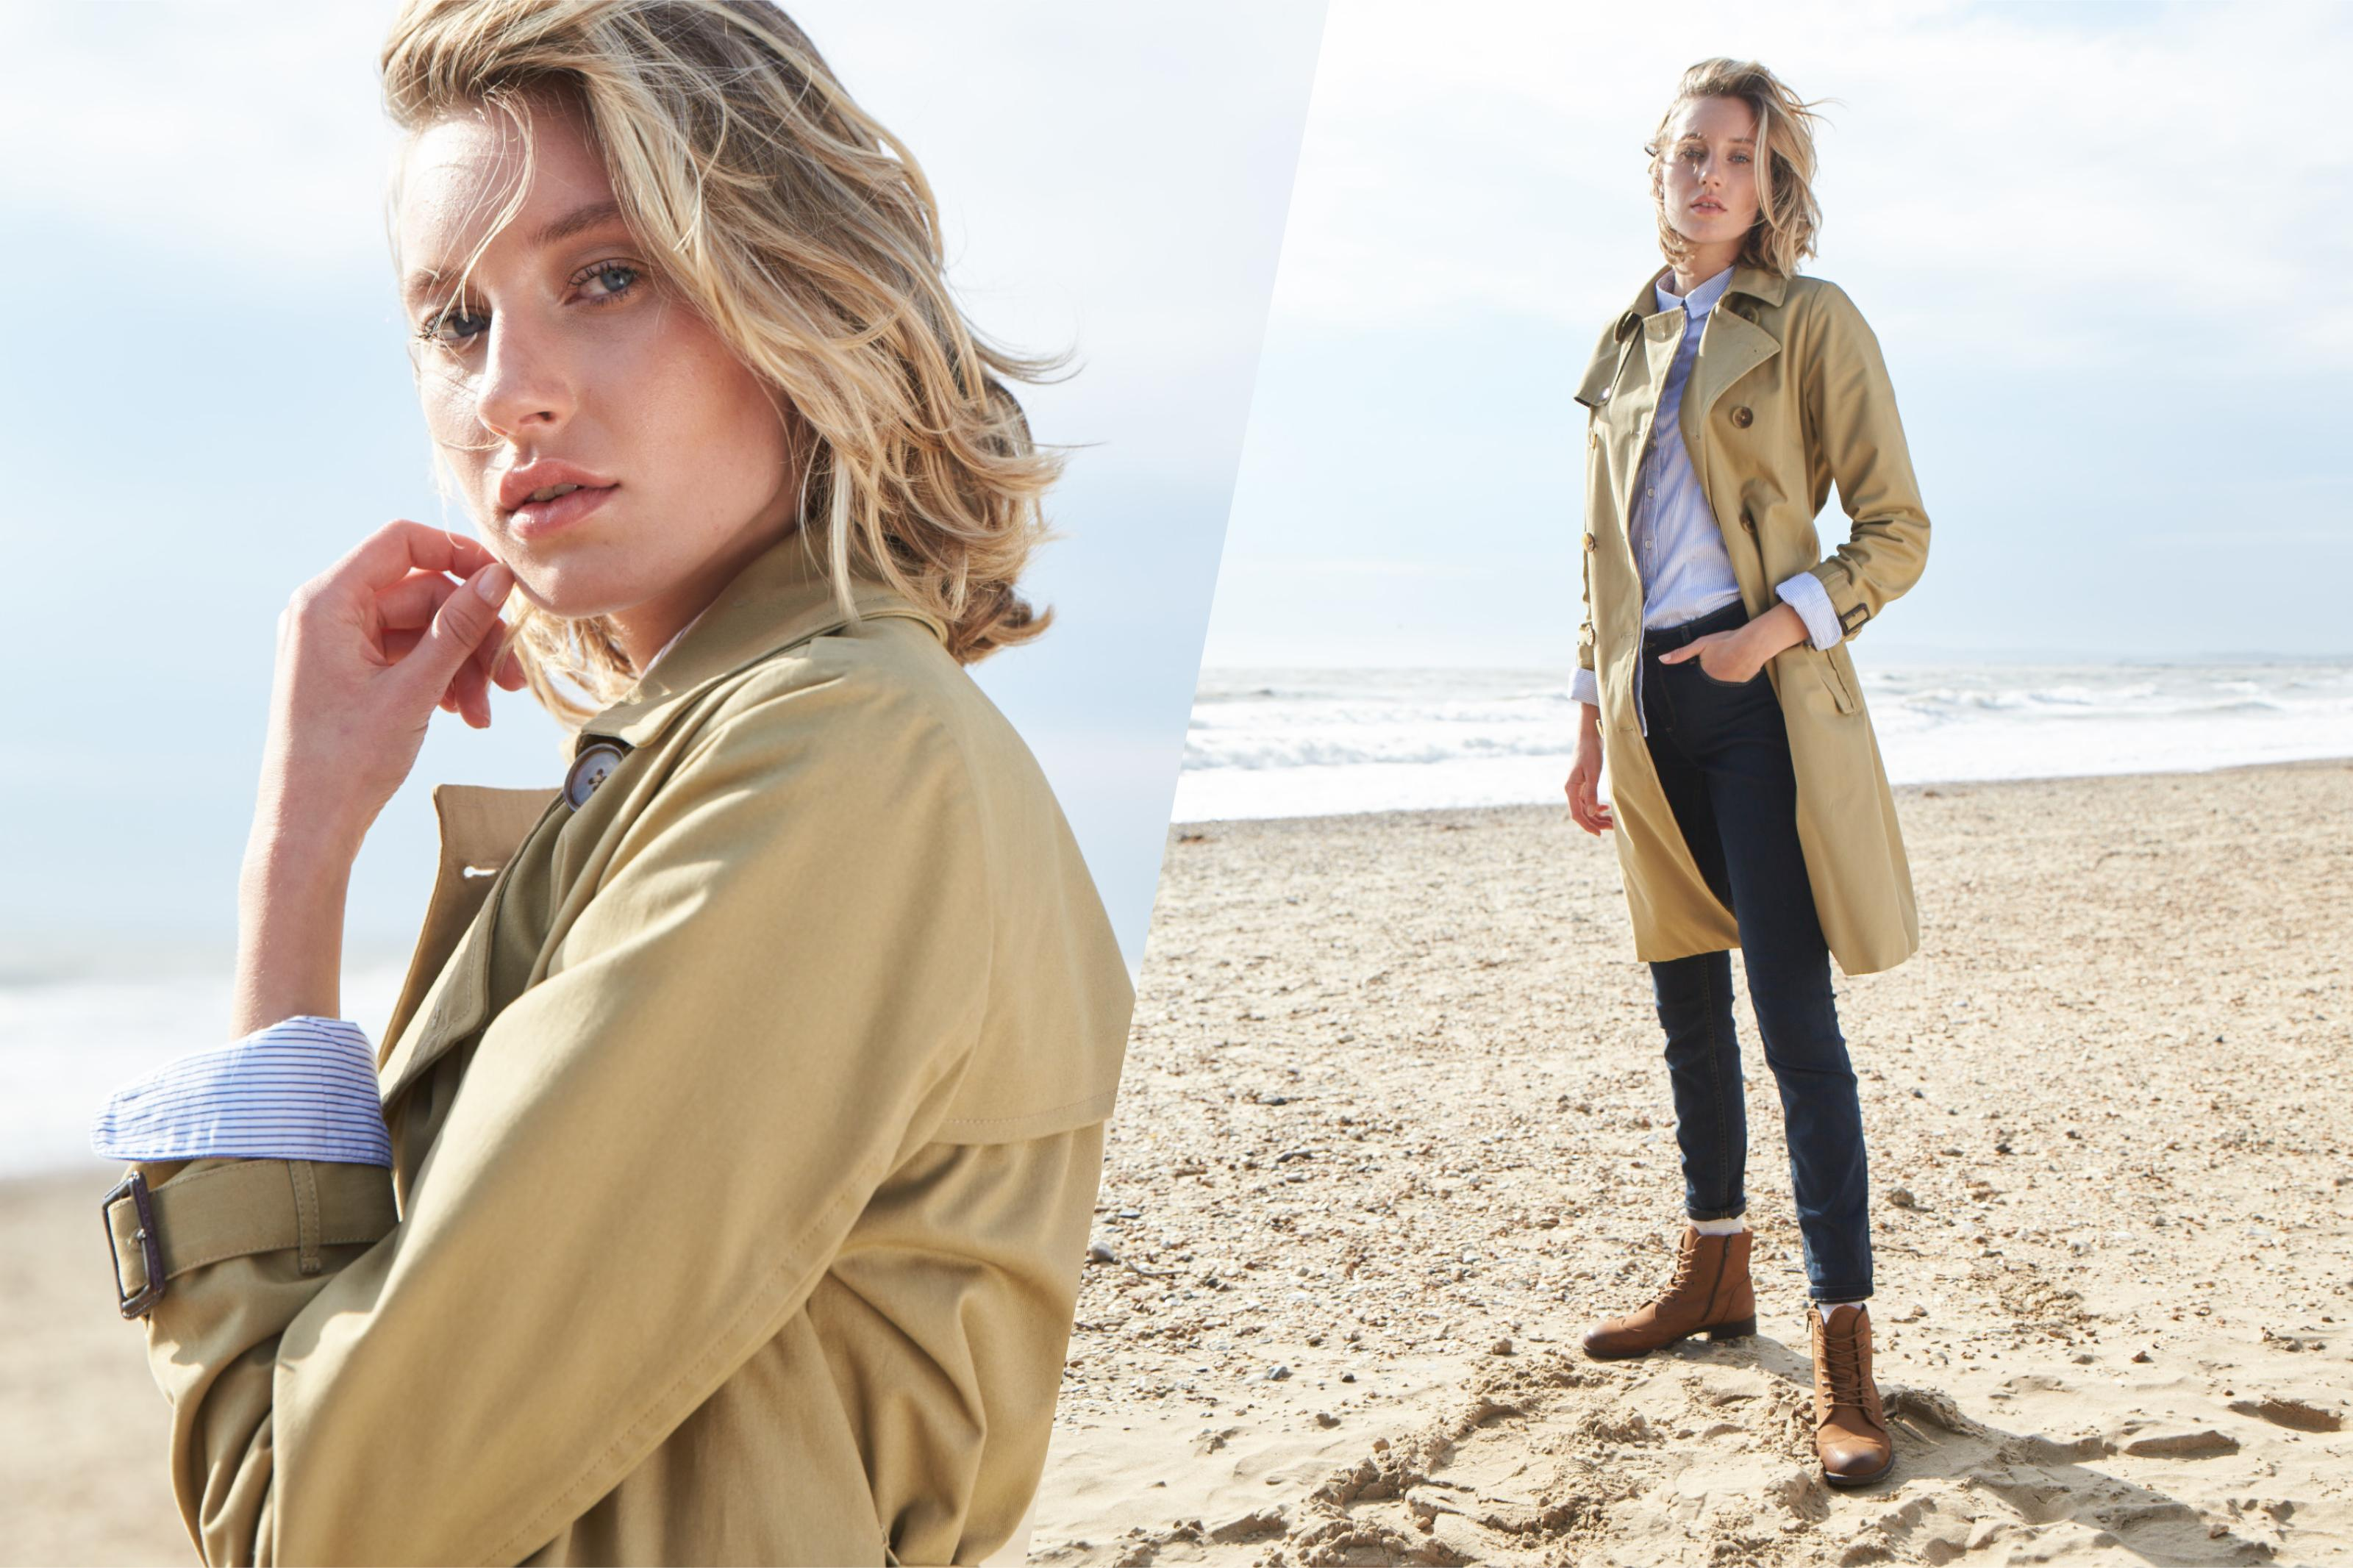 A female model wearing a camel trench coat on a pebbled beach.